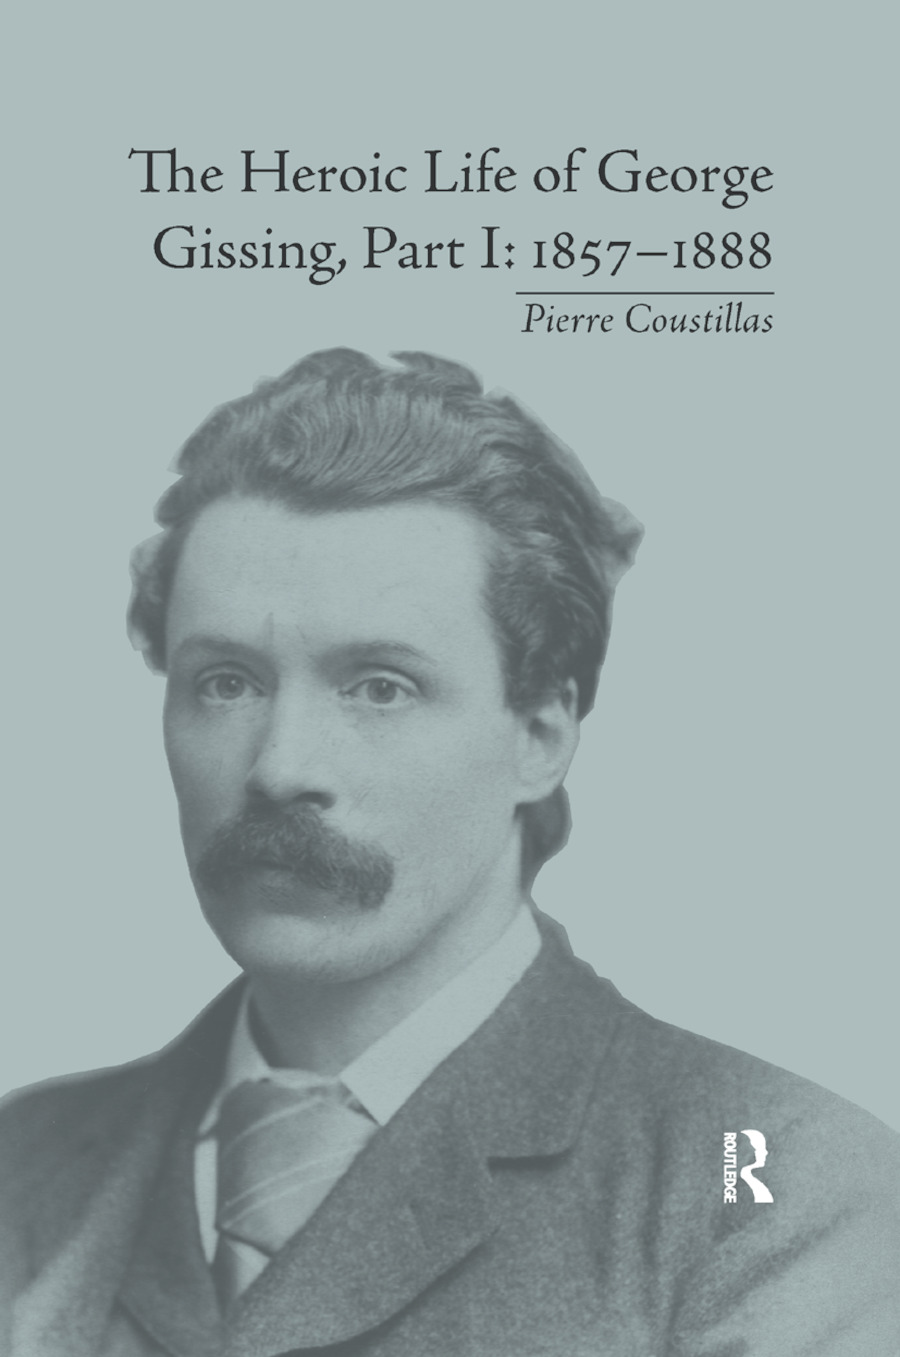 The Heroic Life of George Gissing, Part I: 1857�1888 book cover